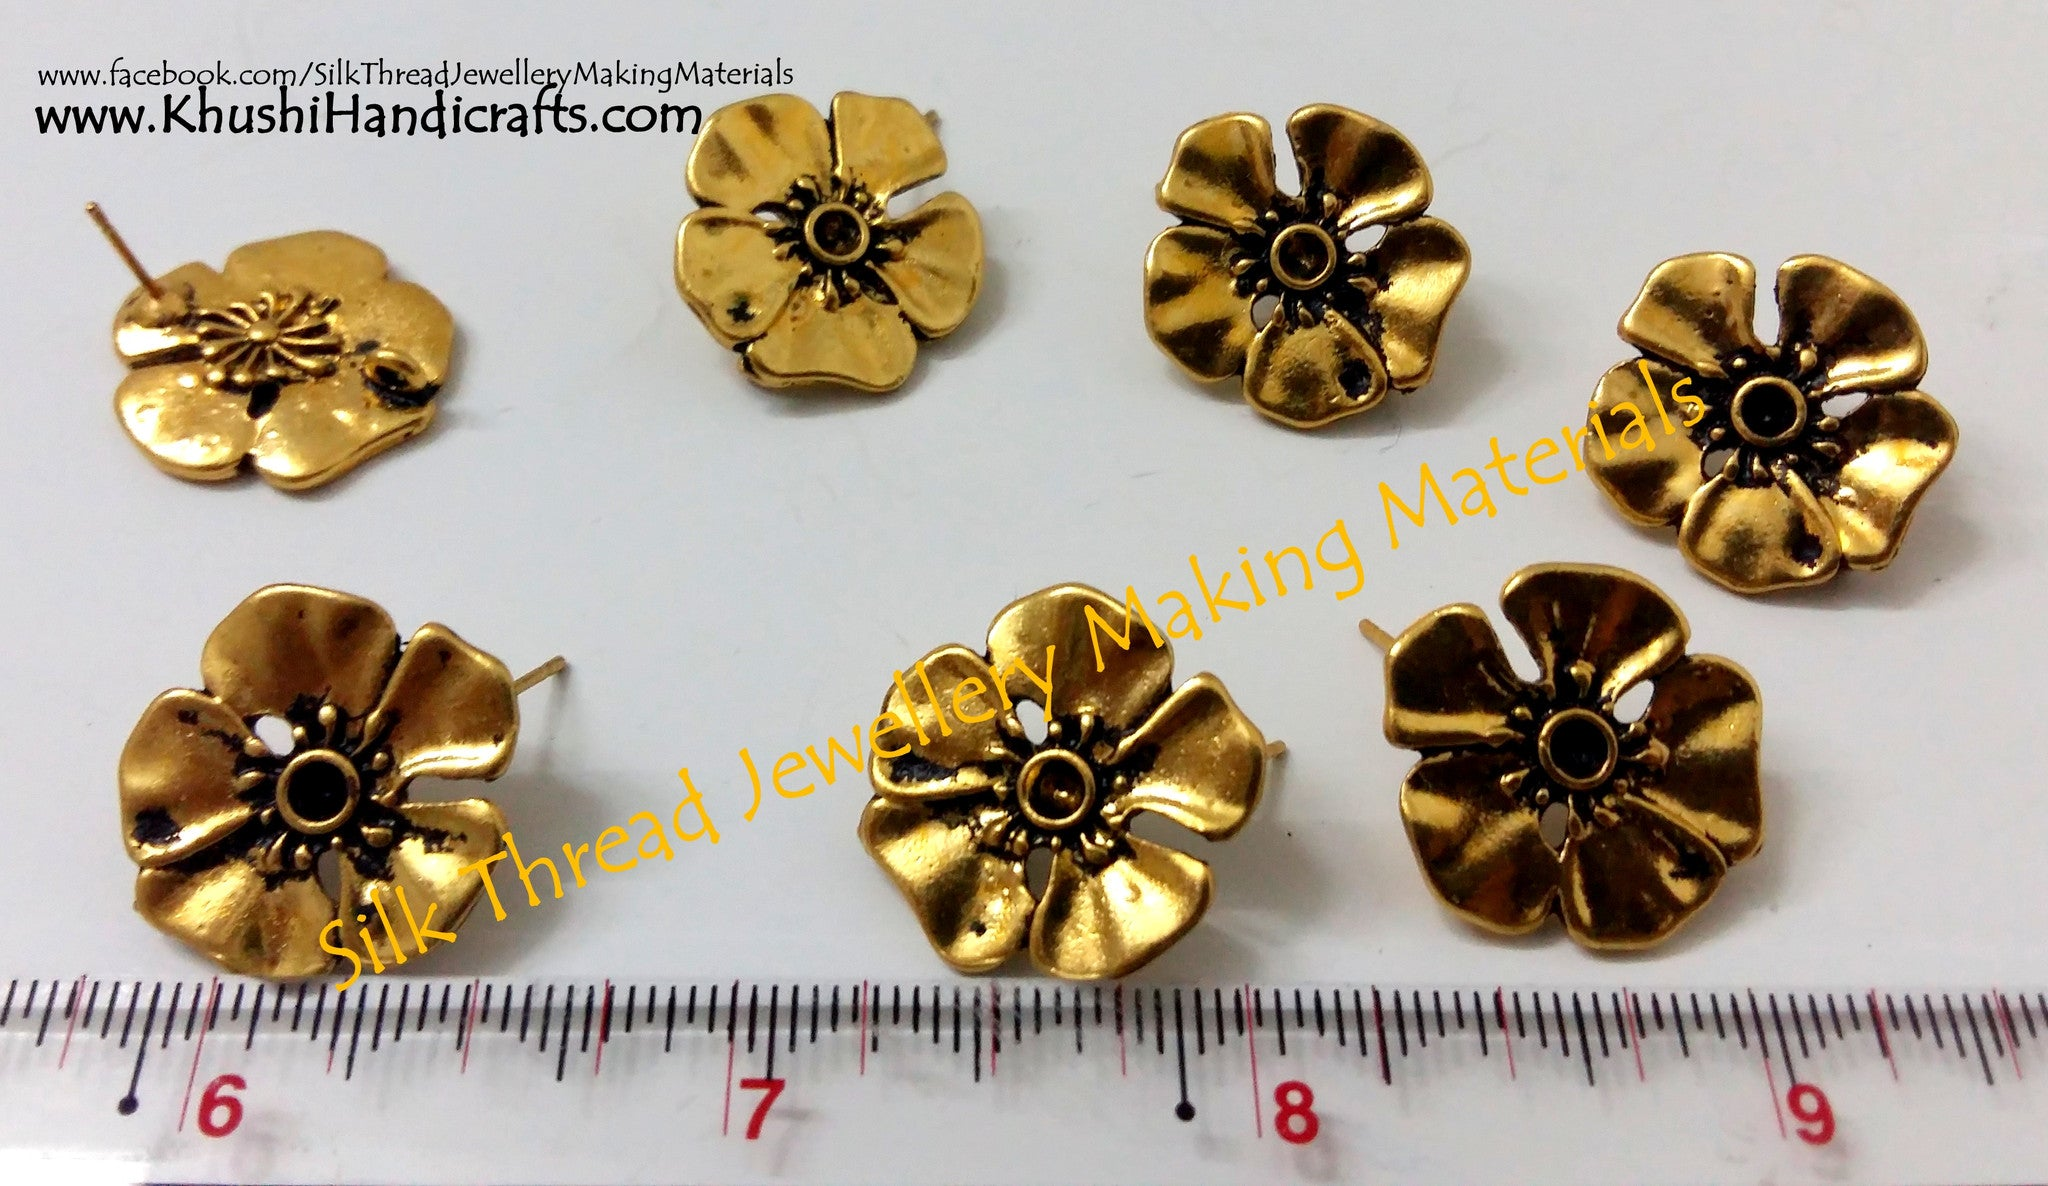 yellow lewis at nina main rsp john pdp b stud earrings flower com johnlewis buynina gold big online